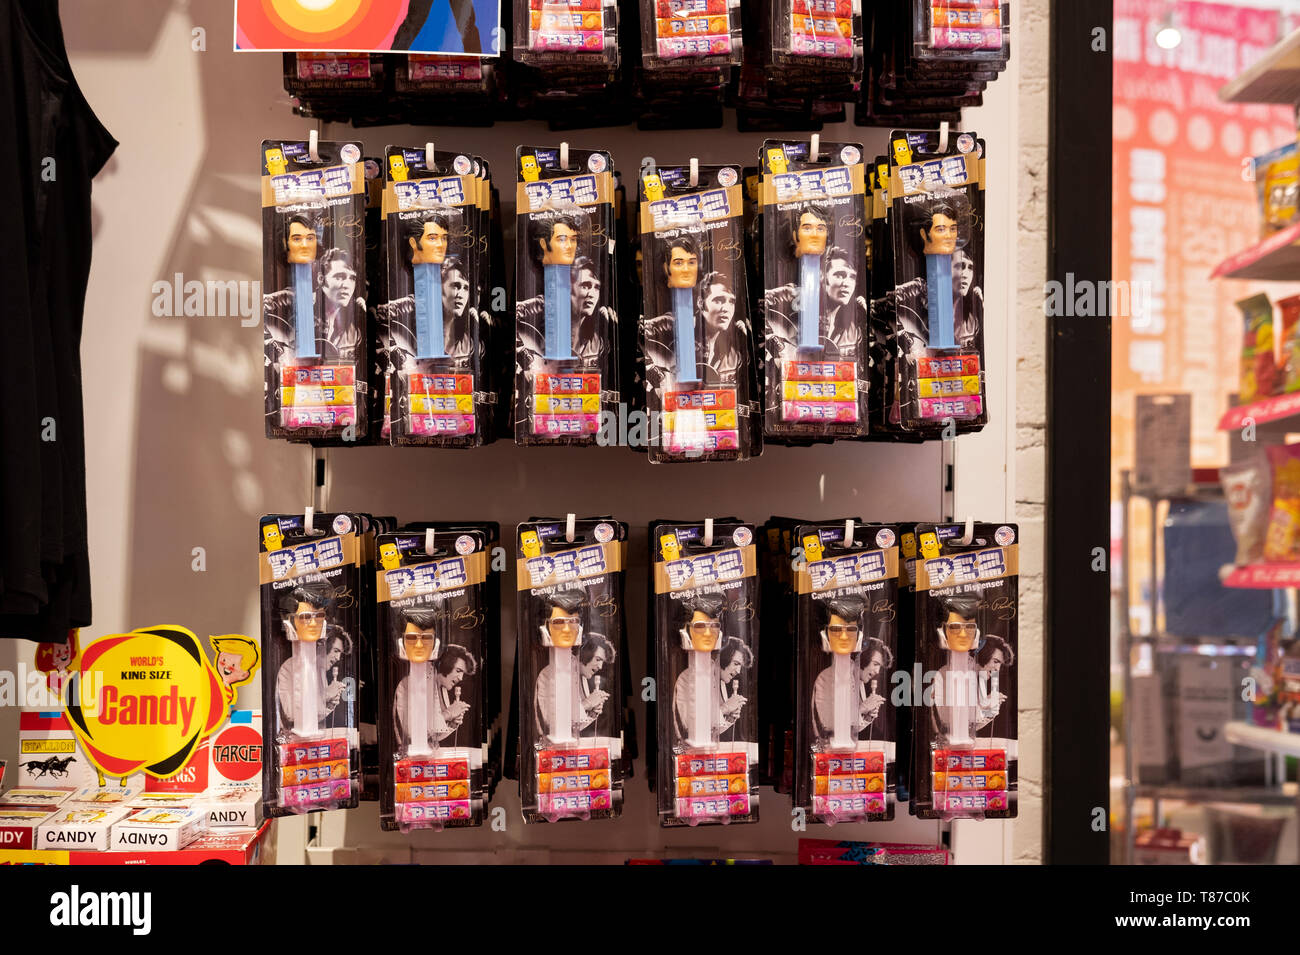 ELVIS PRESLEY Pez dispensers for sale at It'sugar, a candy by the pound chain store. In Greenwich Village, New York City. Stock Photo